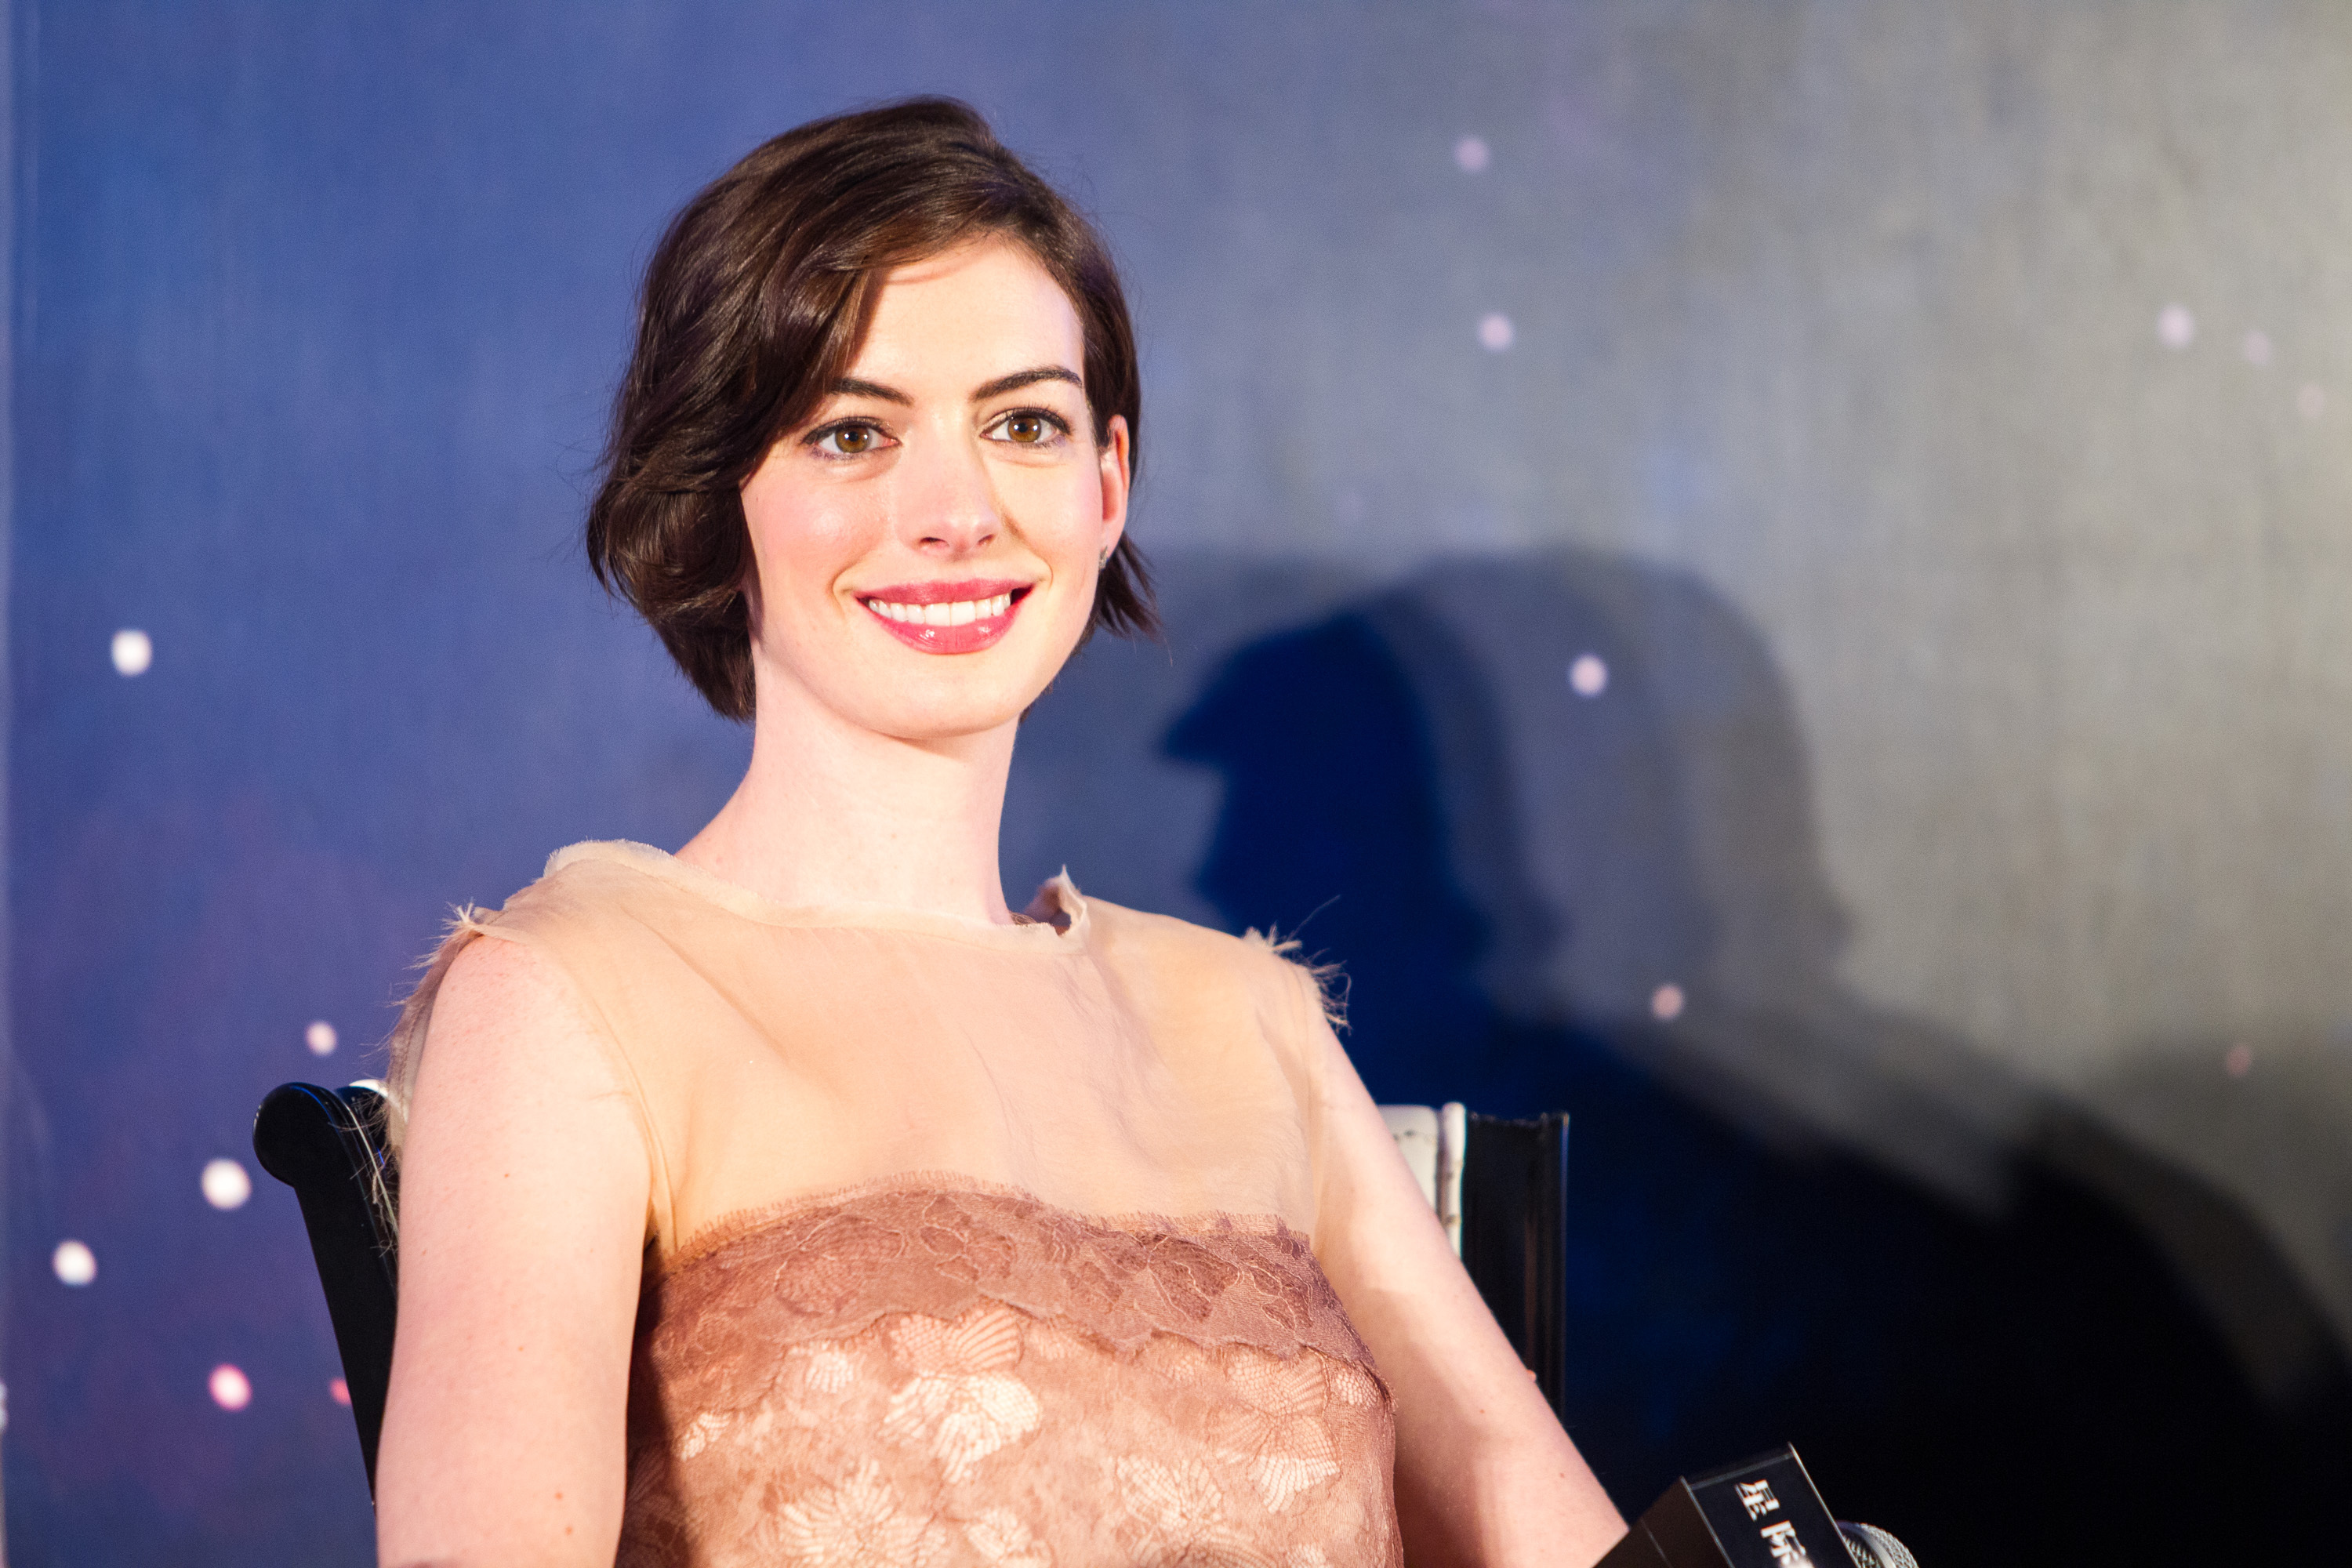 Actress Anne Hathaway attends Asian premiere of new movie  Interstellar  directed by Christopher Nolan on November 10, 2014 in Shanghai, China.